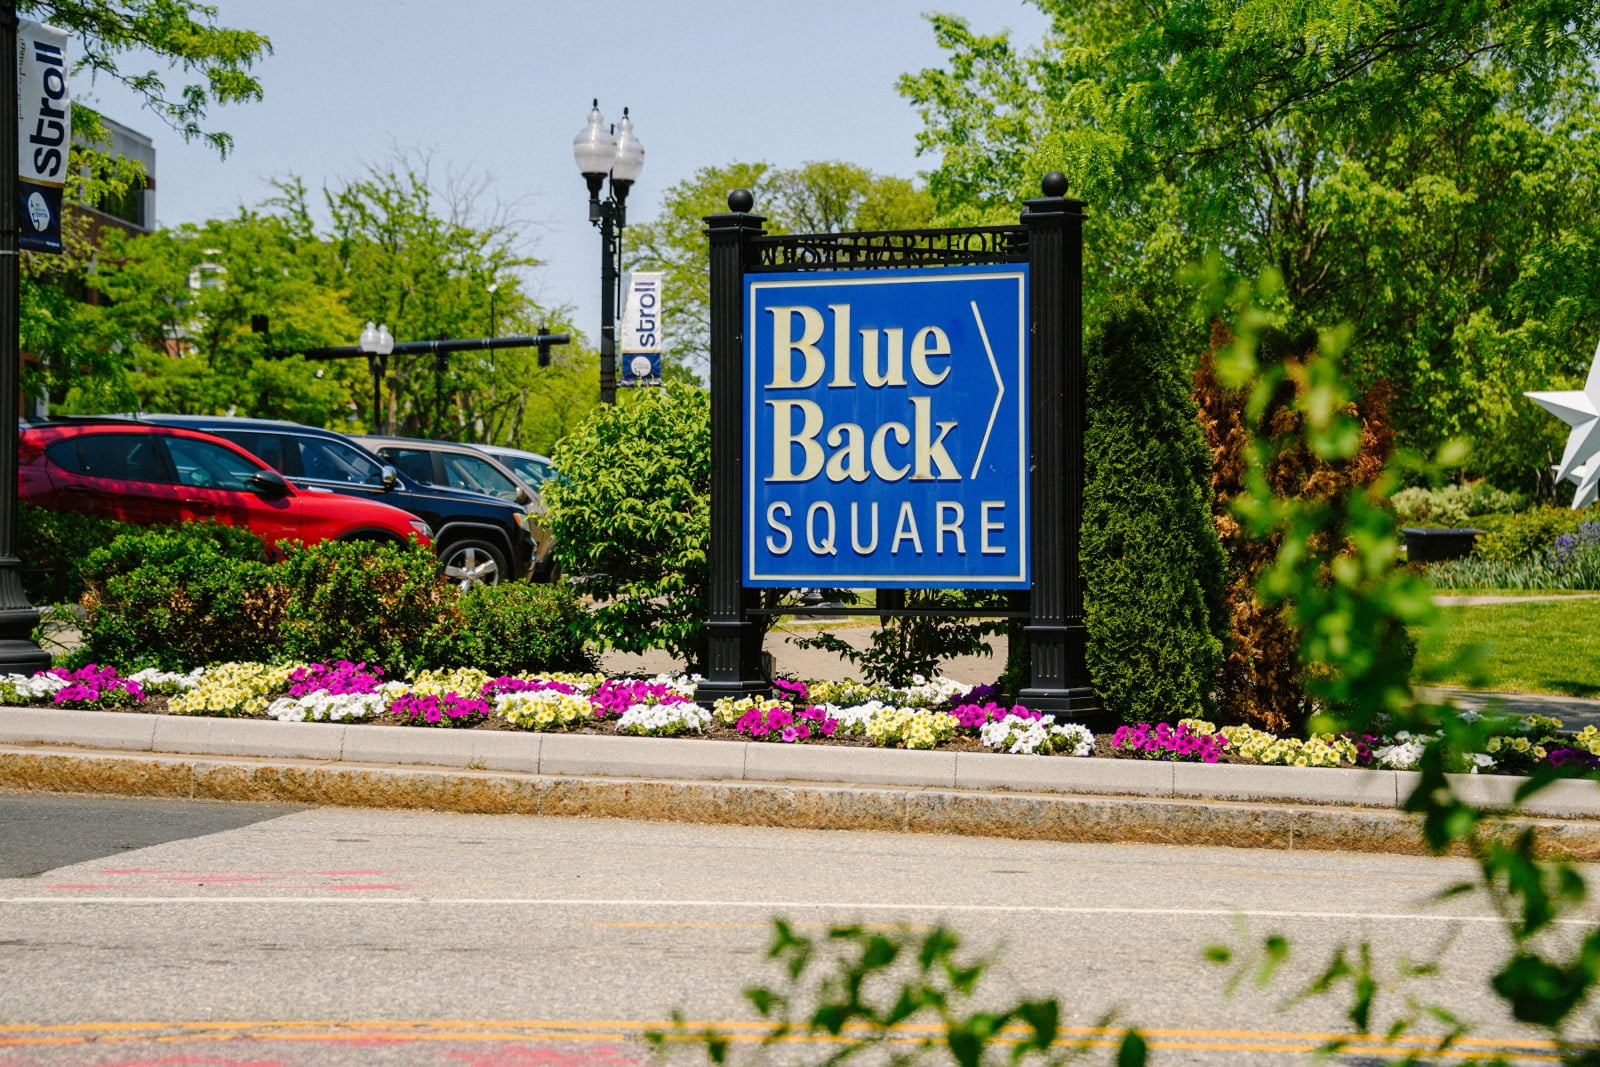 Blue Back Square Sold to Connecticut Real Estate Development Company